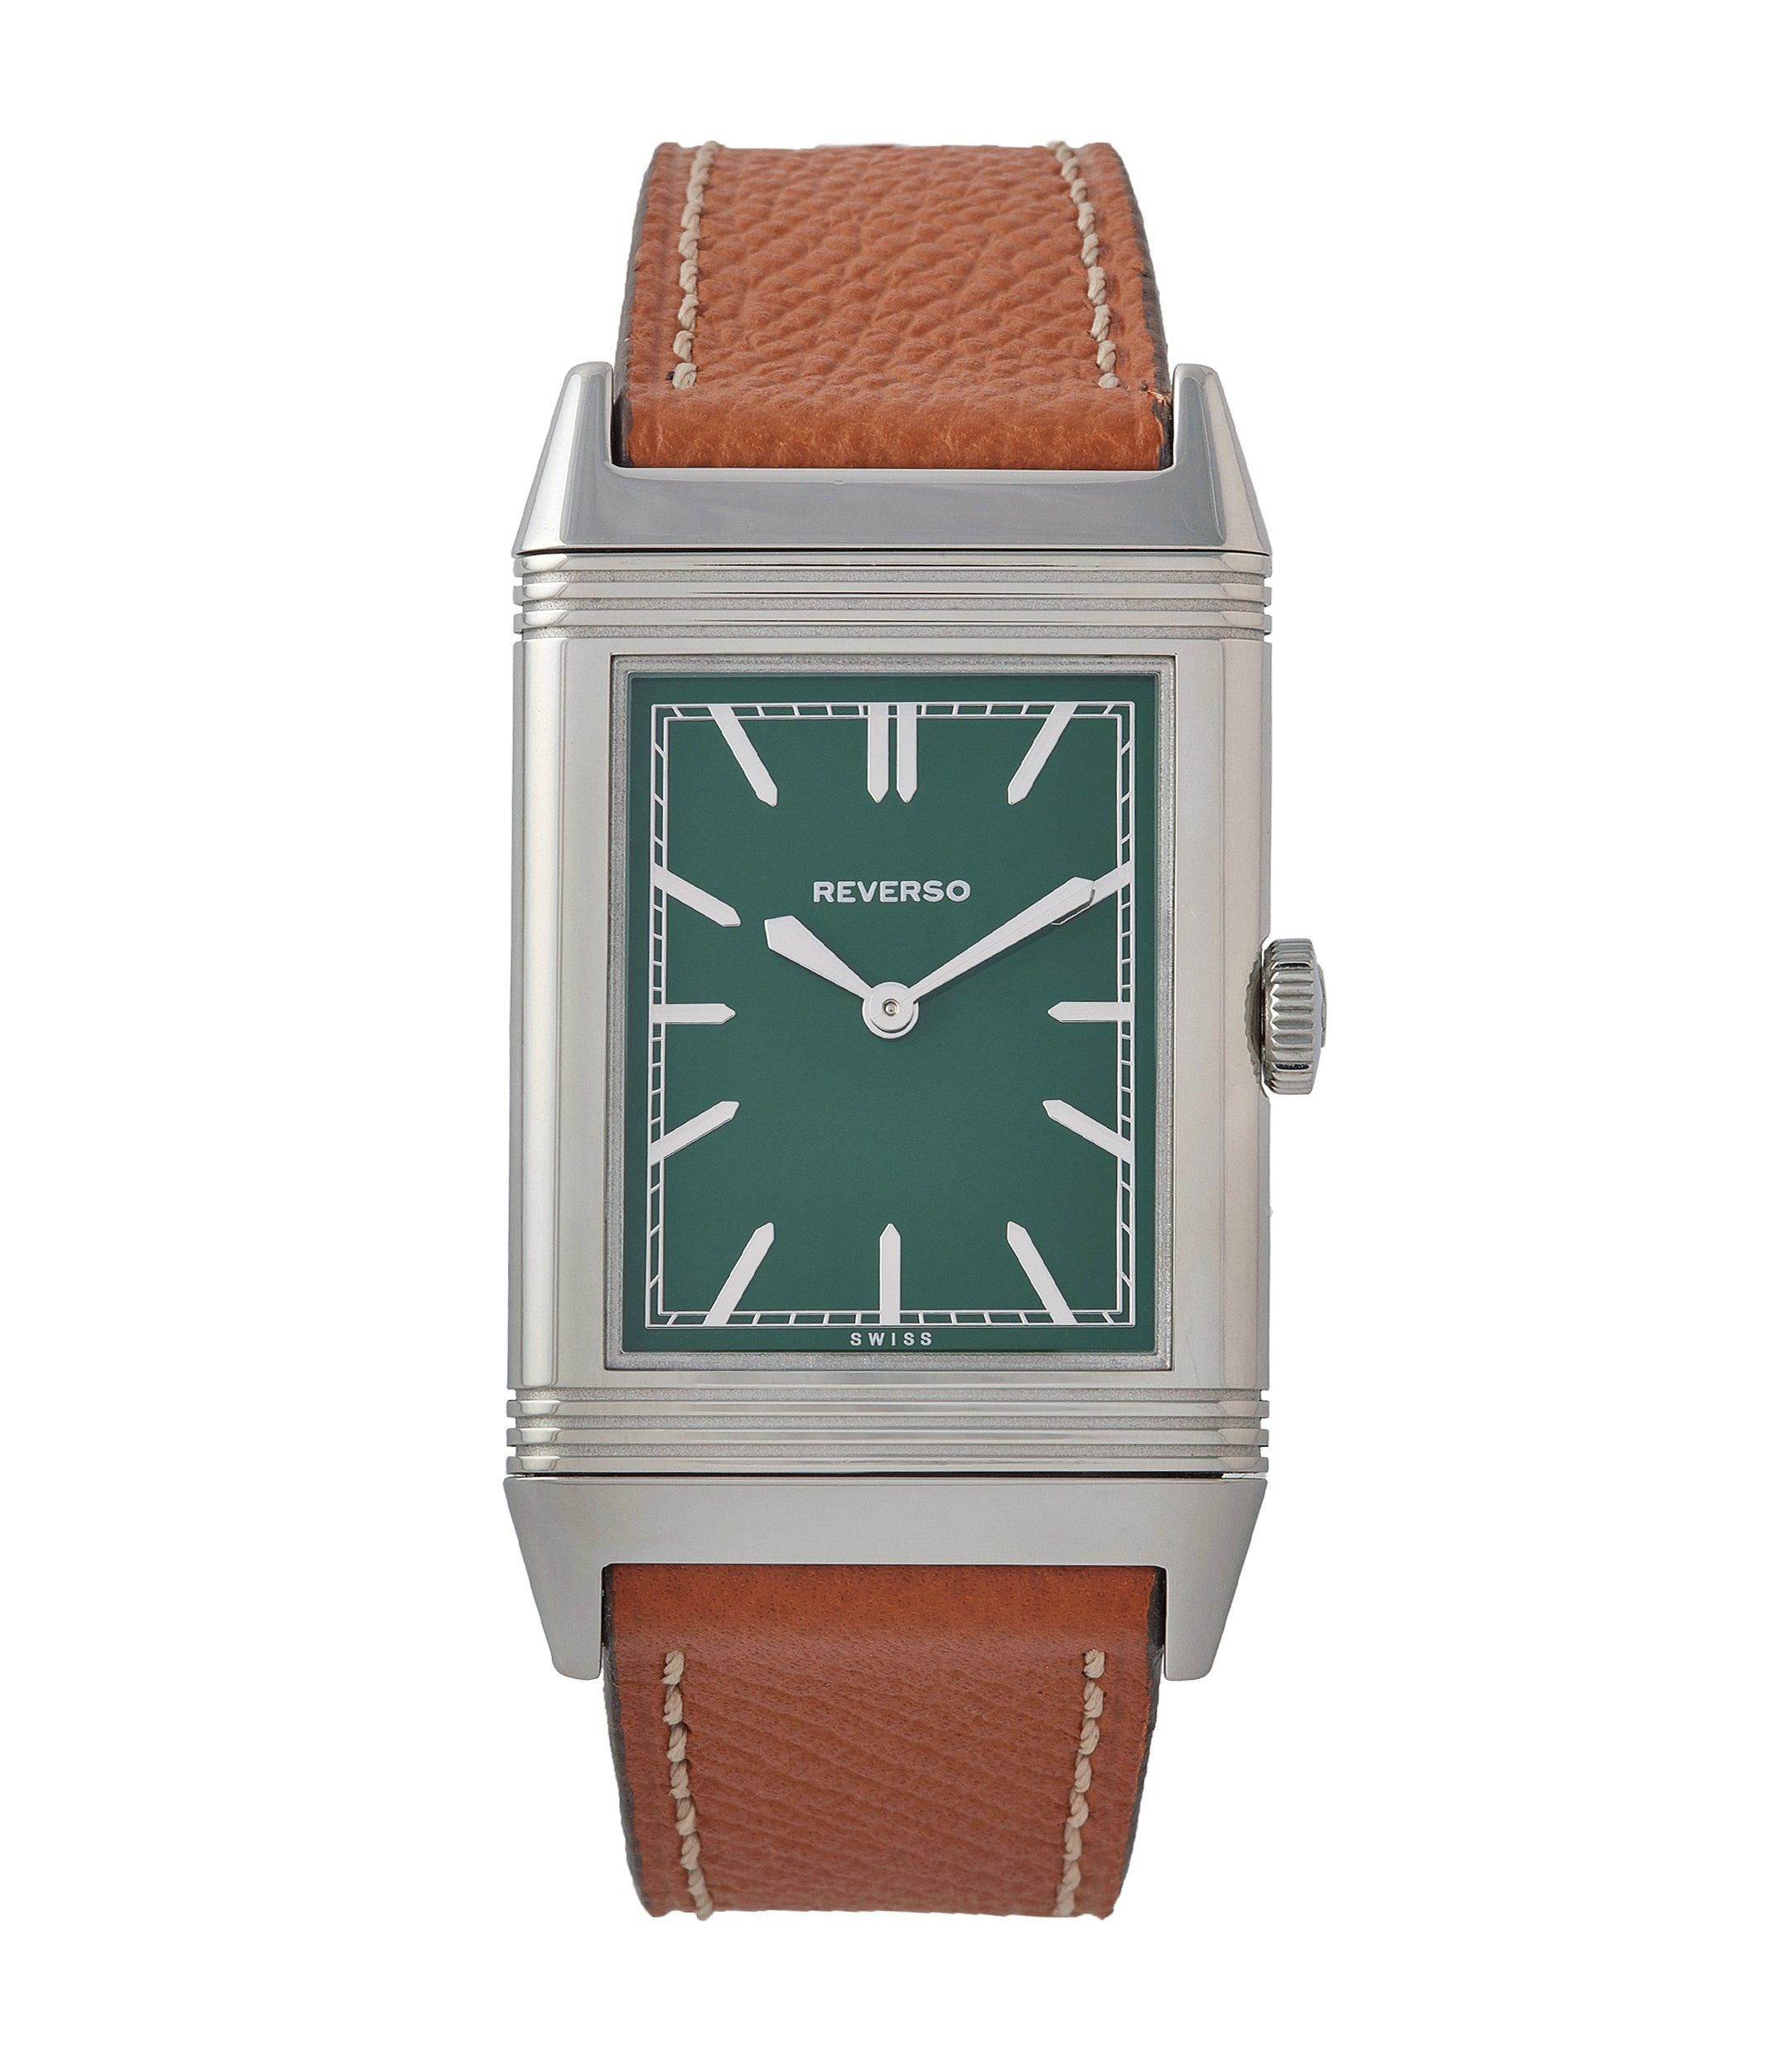 7f143c4720 buy Jaeger-LeCoultre Grand Reverso 1931 Green London Flagship Edition